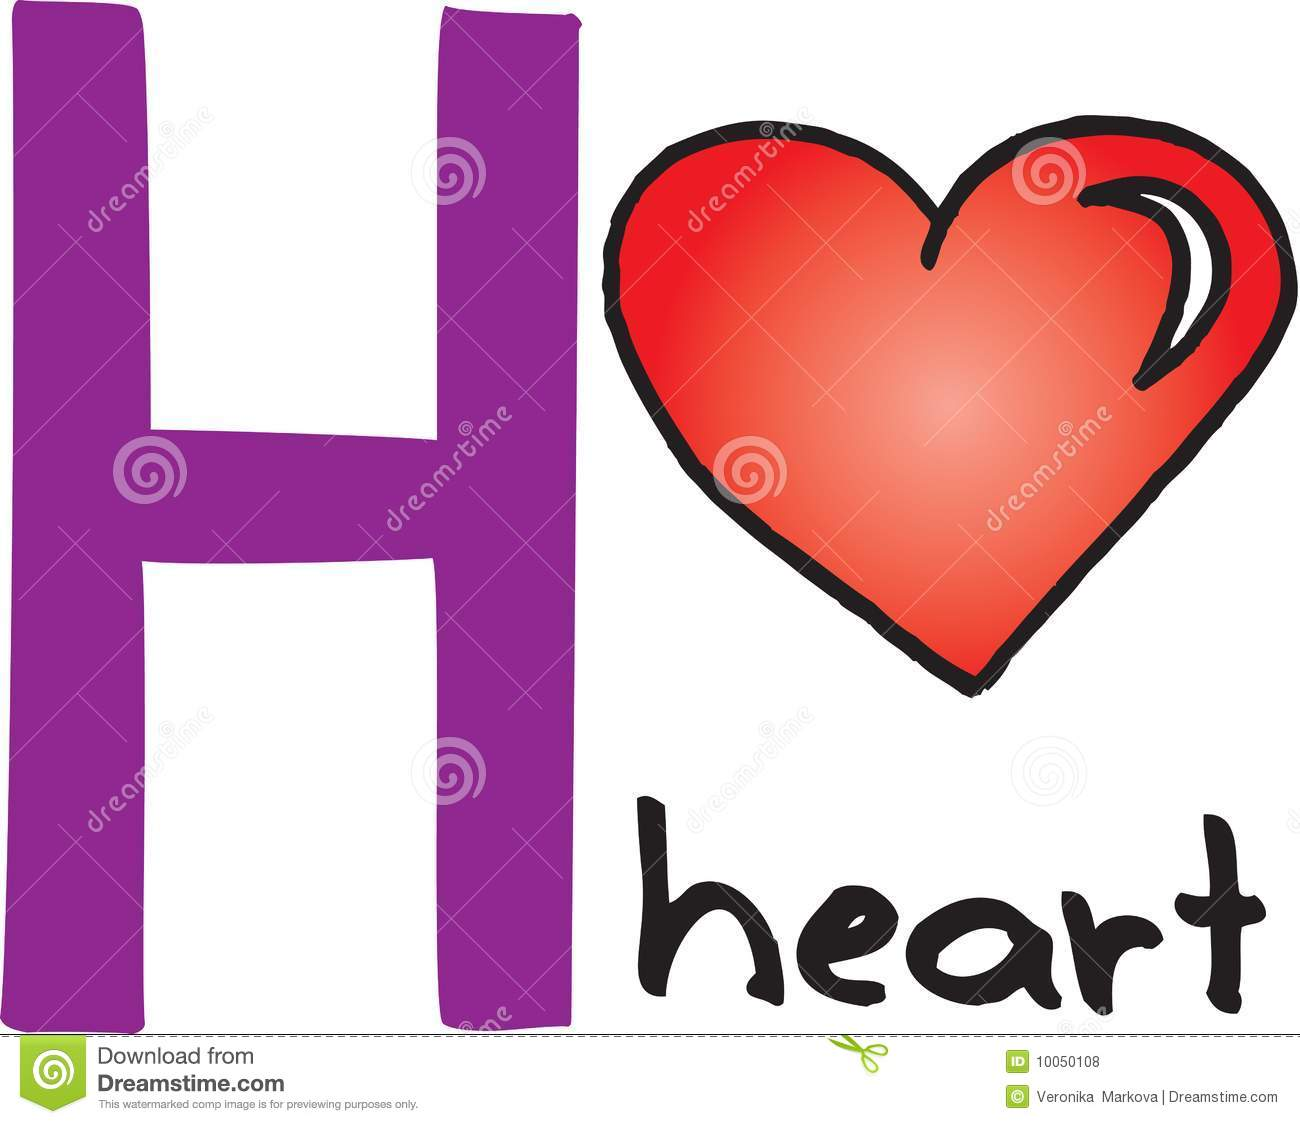 Illustration of a Letter h For Heart on a White Background Vector by Source Abuse Report Red Letter h c